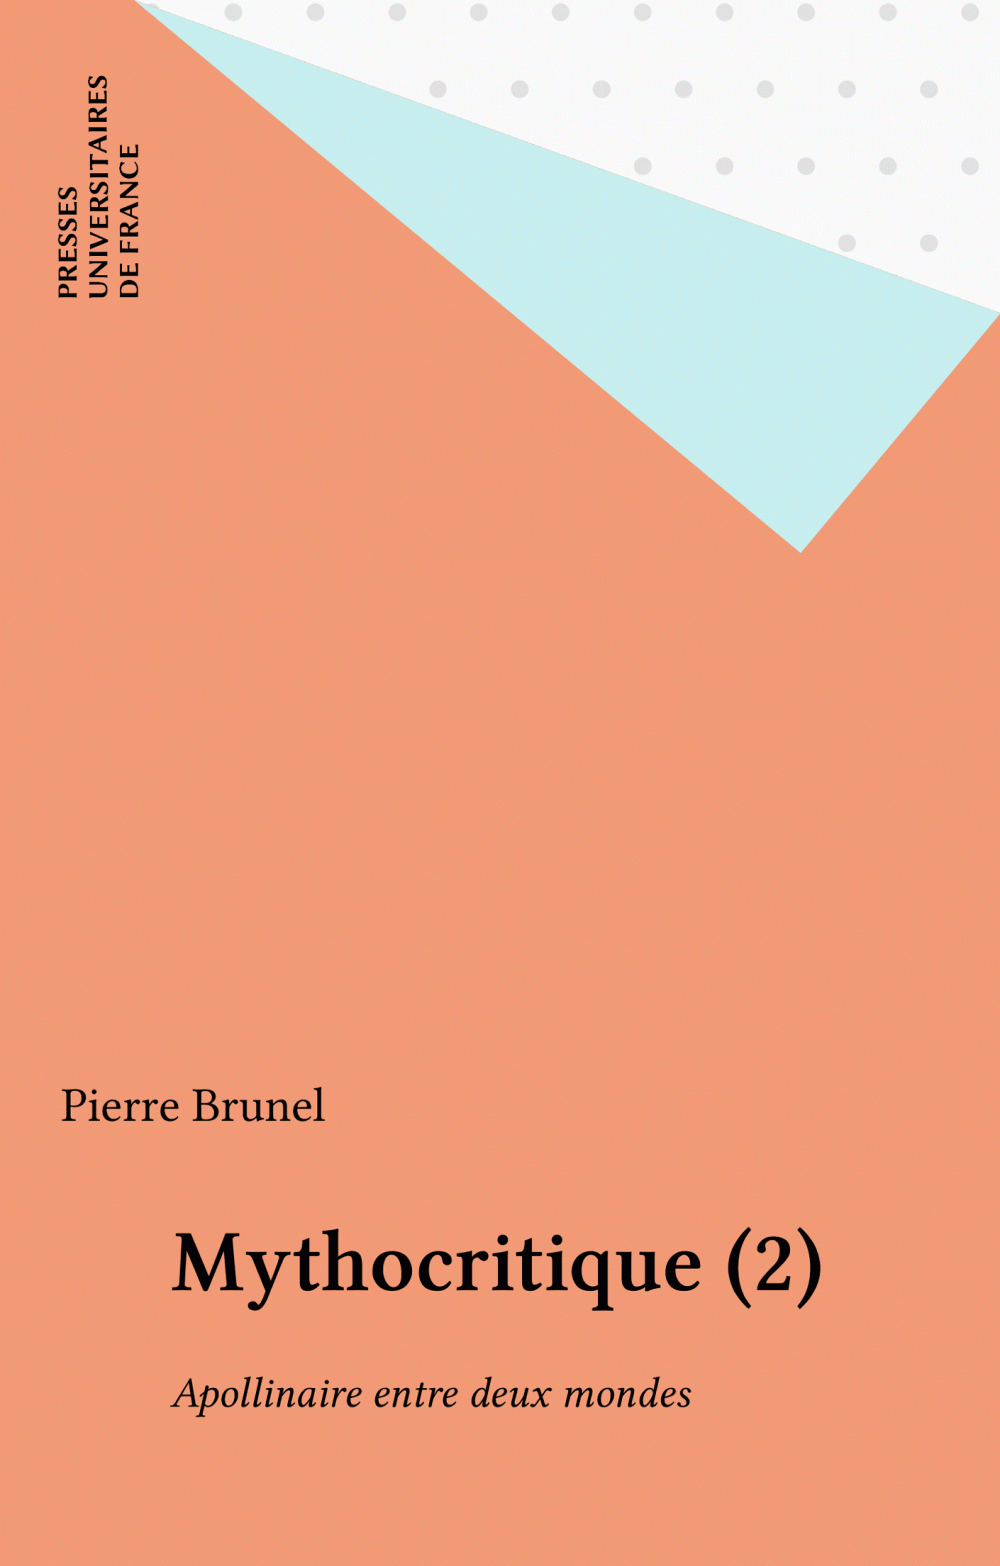 Mythocritique (2)